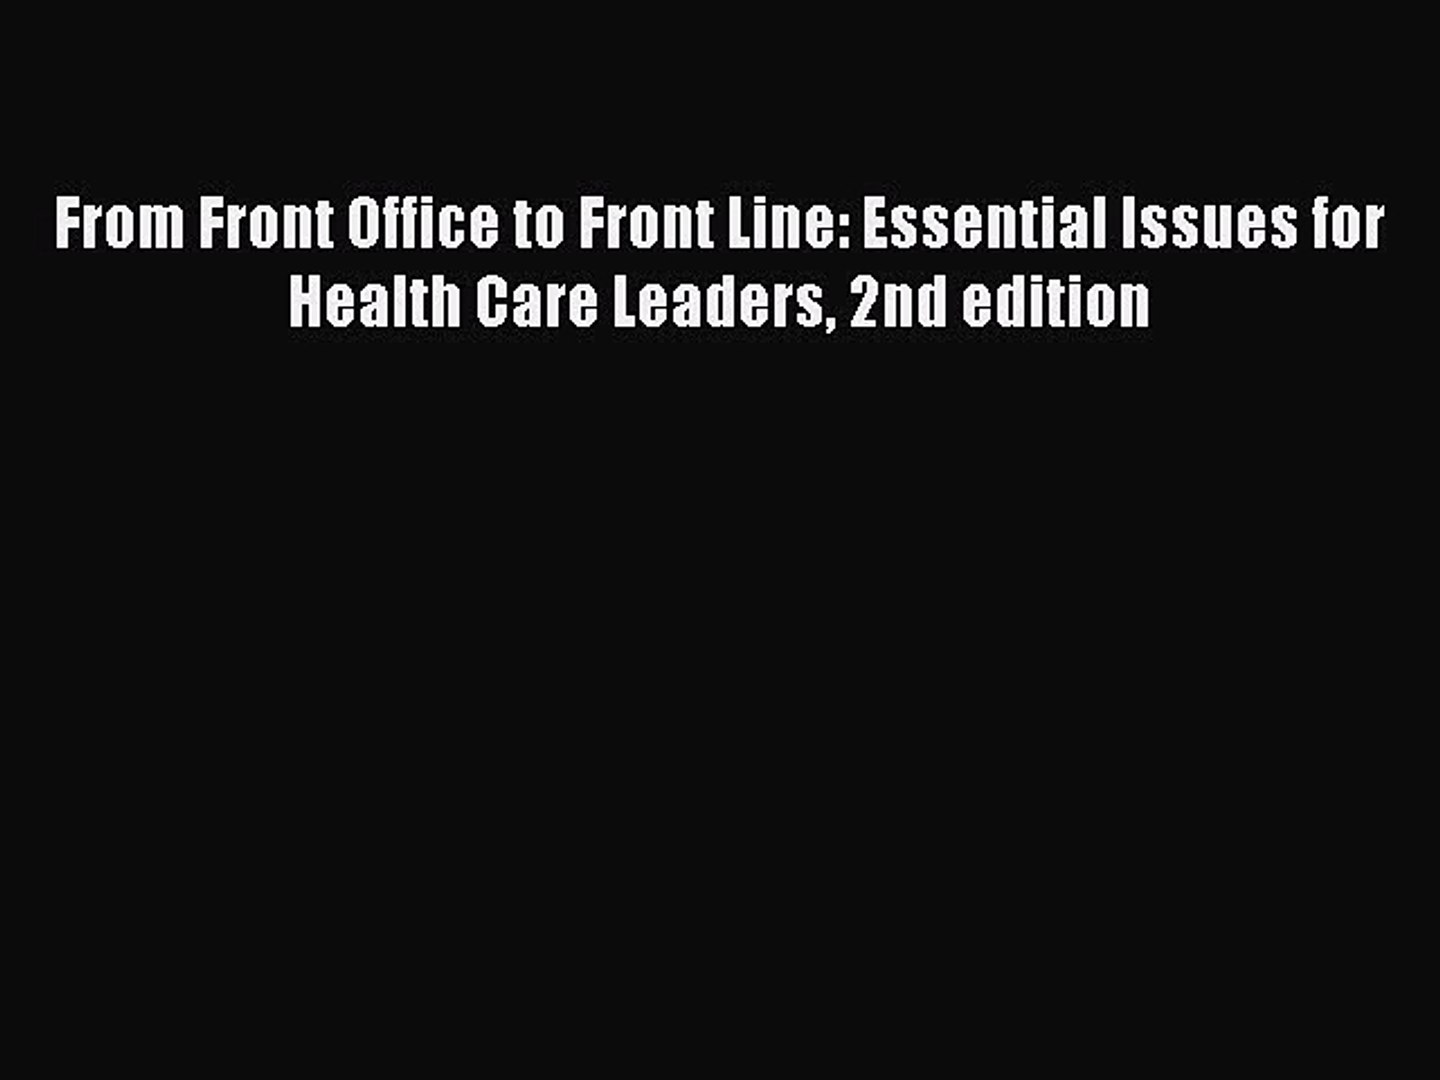 [Read Book] From Front Office to Front Line: Essential Issues for Health Care Leaders 2nd edition